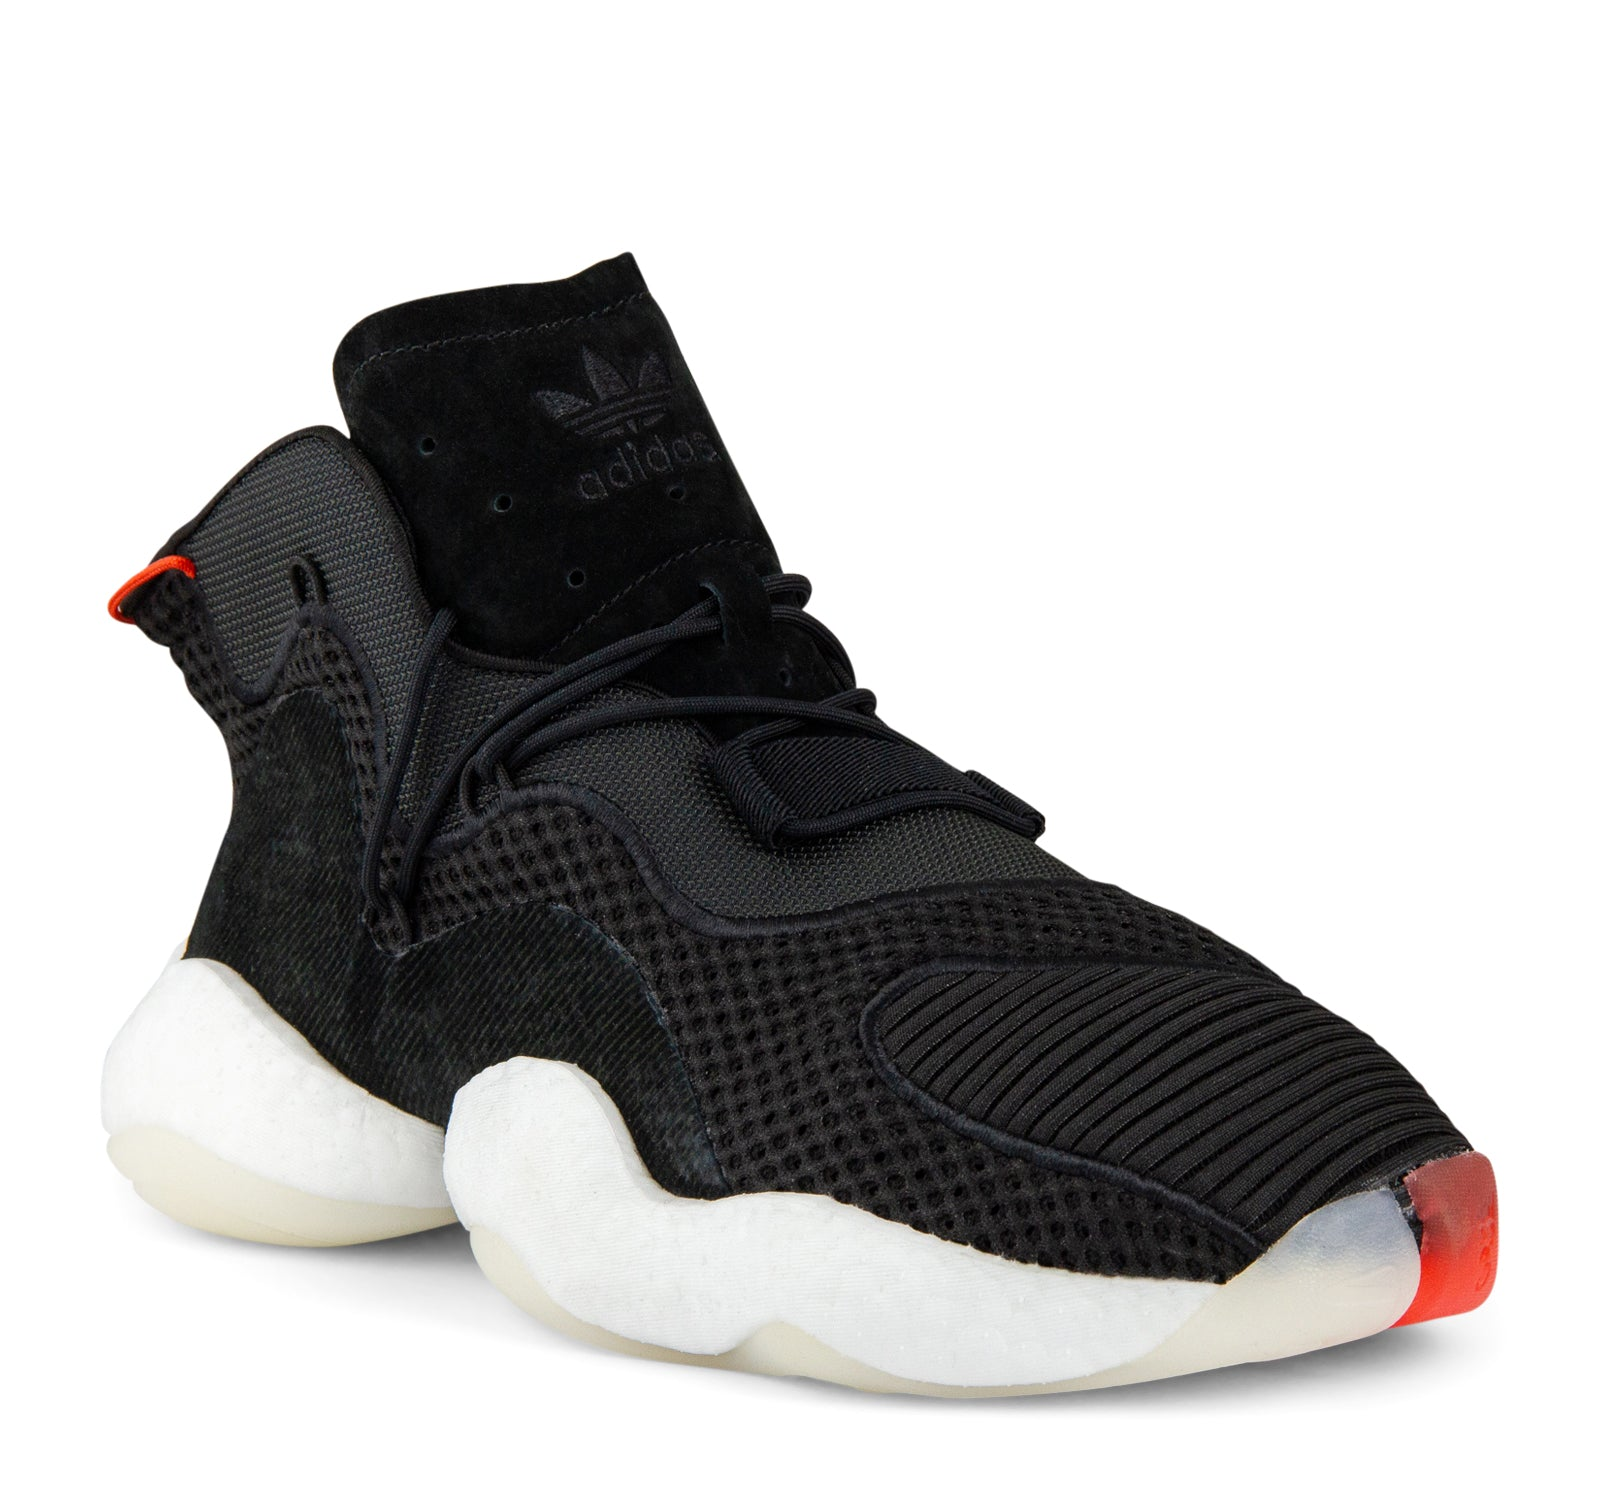 newest 2d152 26586 ... Adidas Crazy BYW B37480 Mens Sneaker in Black and White - Adidas - On  The EDGE ...